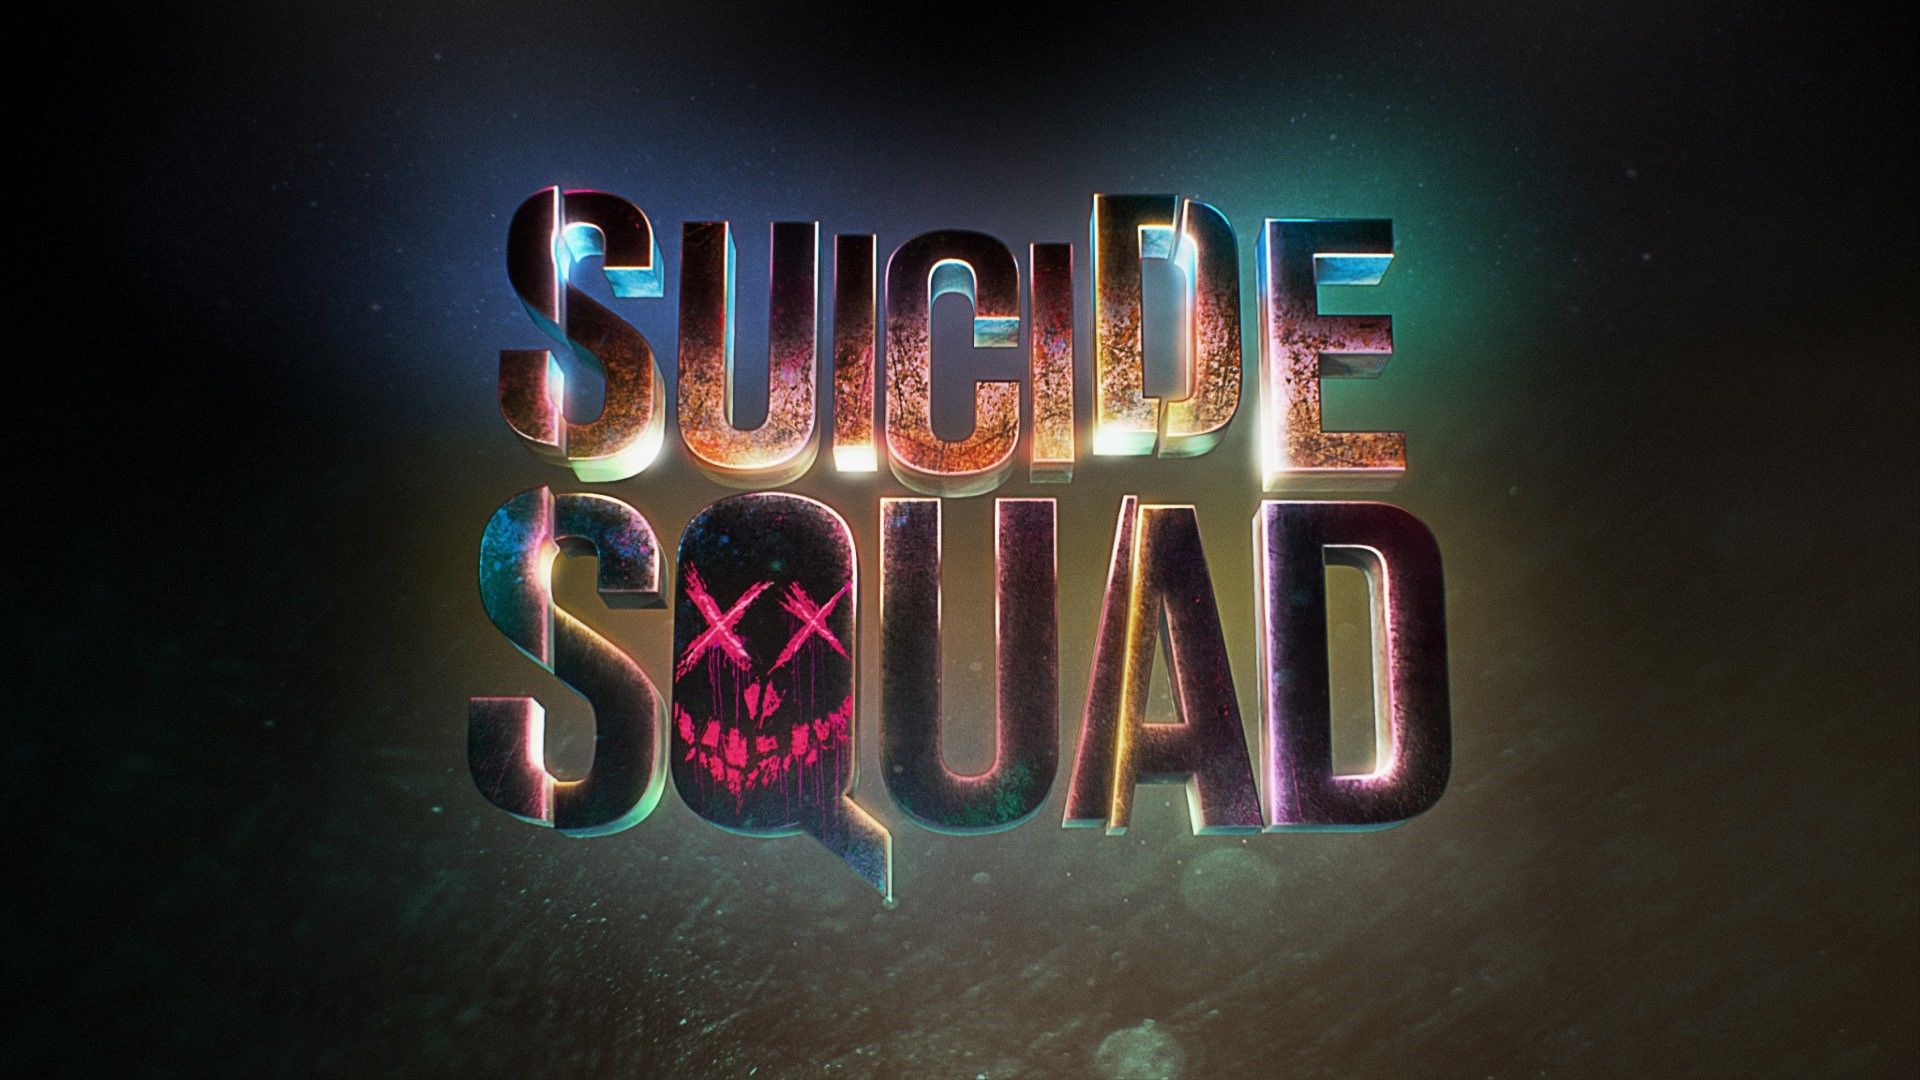 Wallpaper Suicide Squad Title with Lights